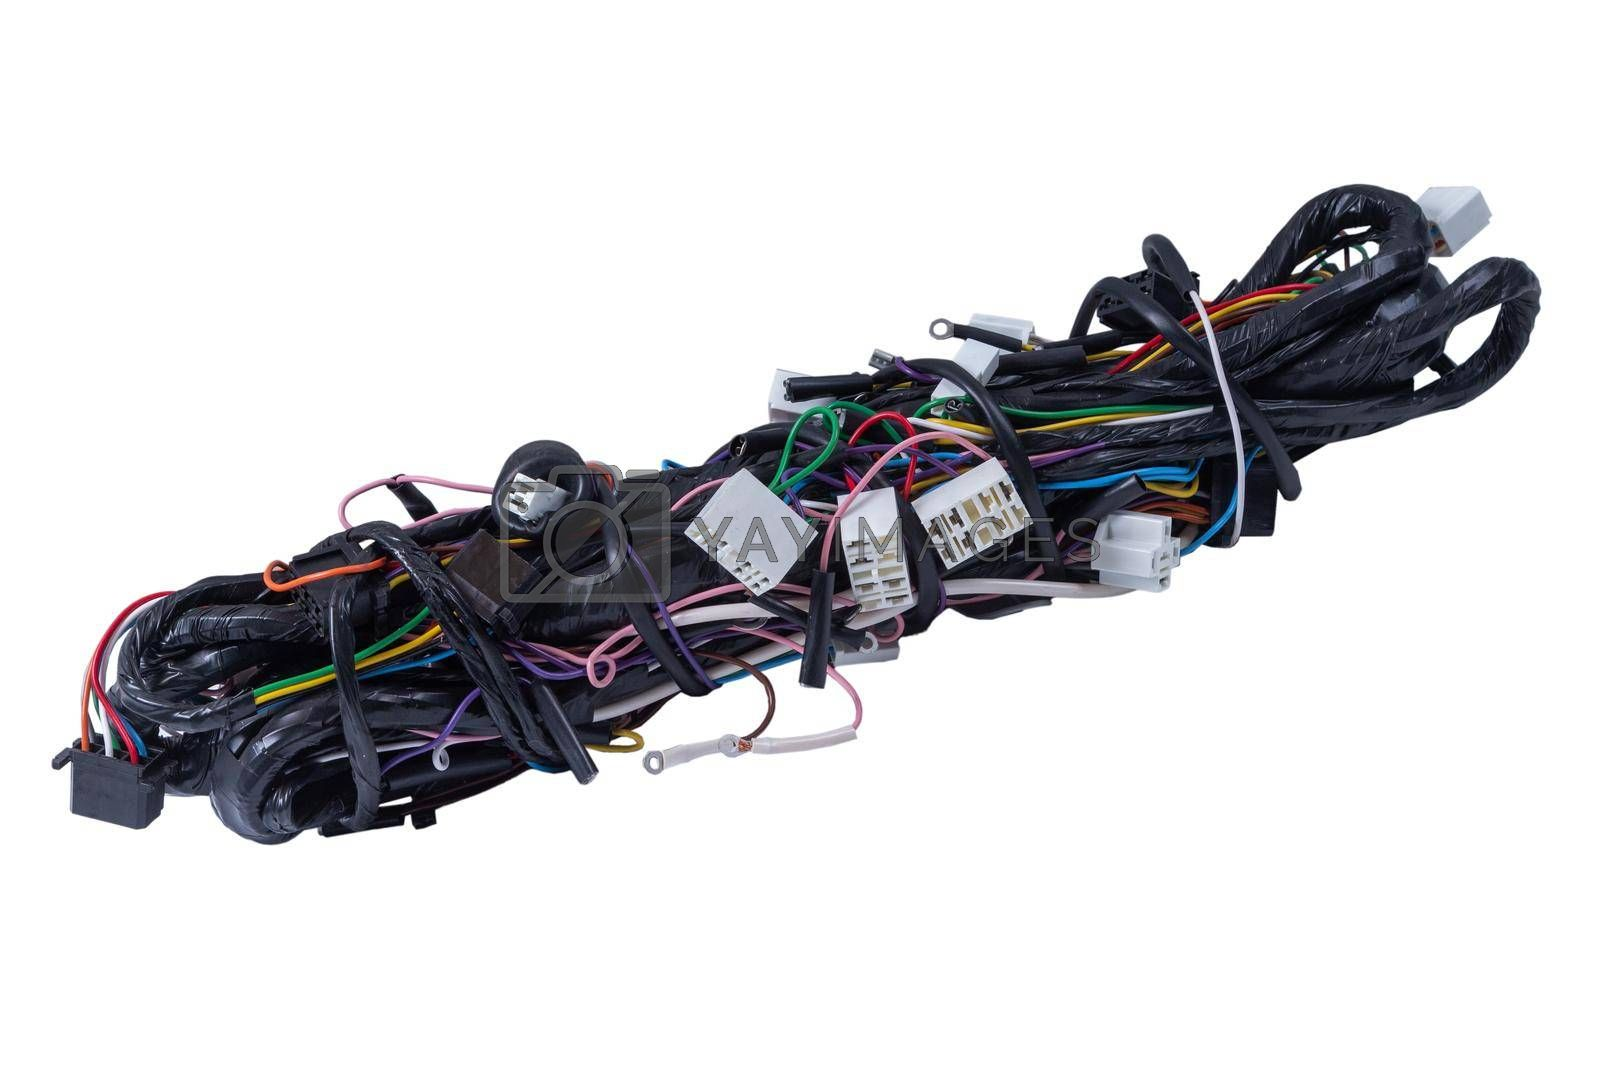 the wiring of the car, isolated on white background